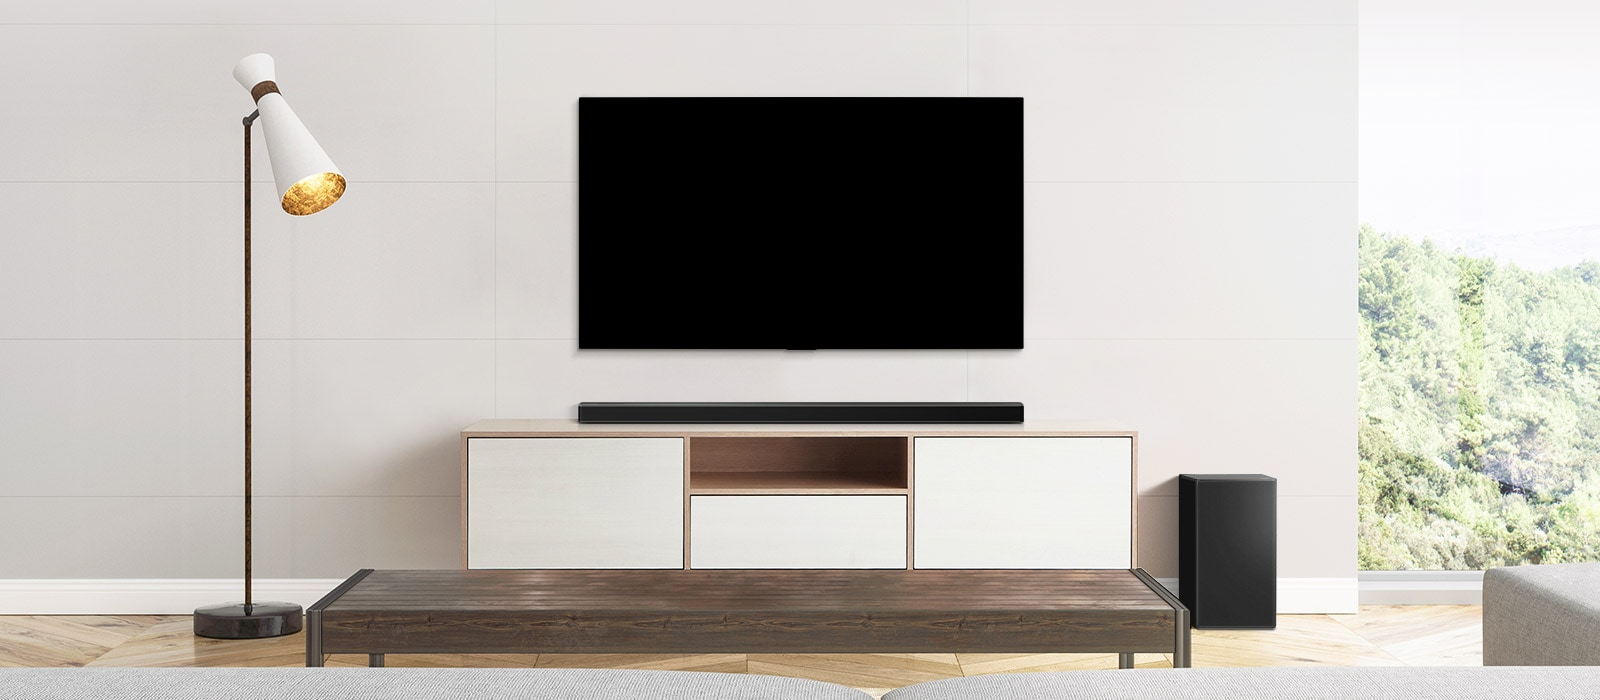 A TV, soundbar, and subwoofer placed in a plain living room.